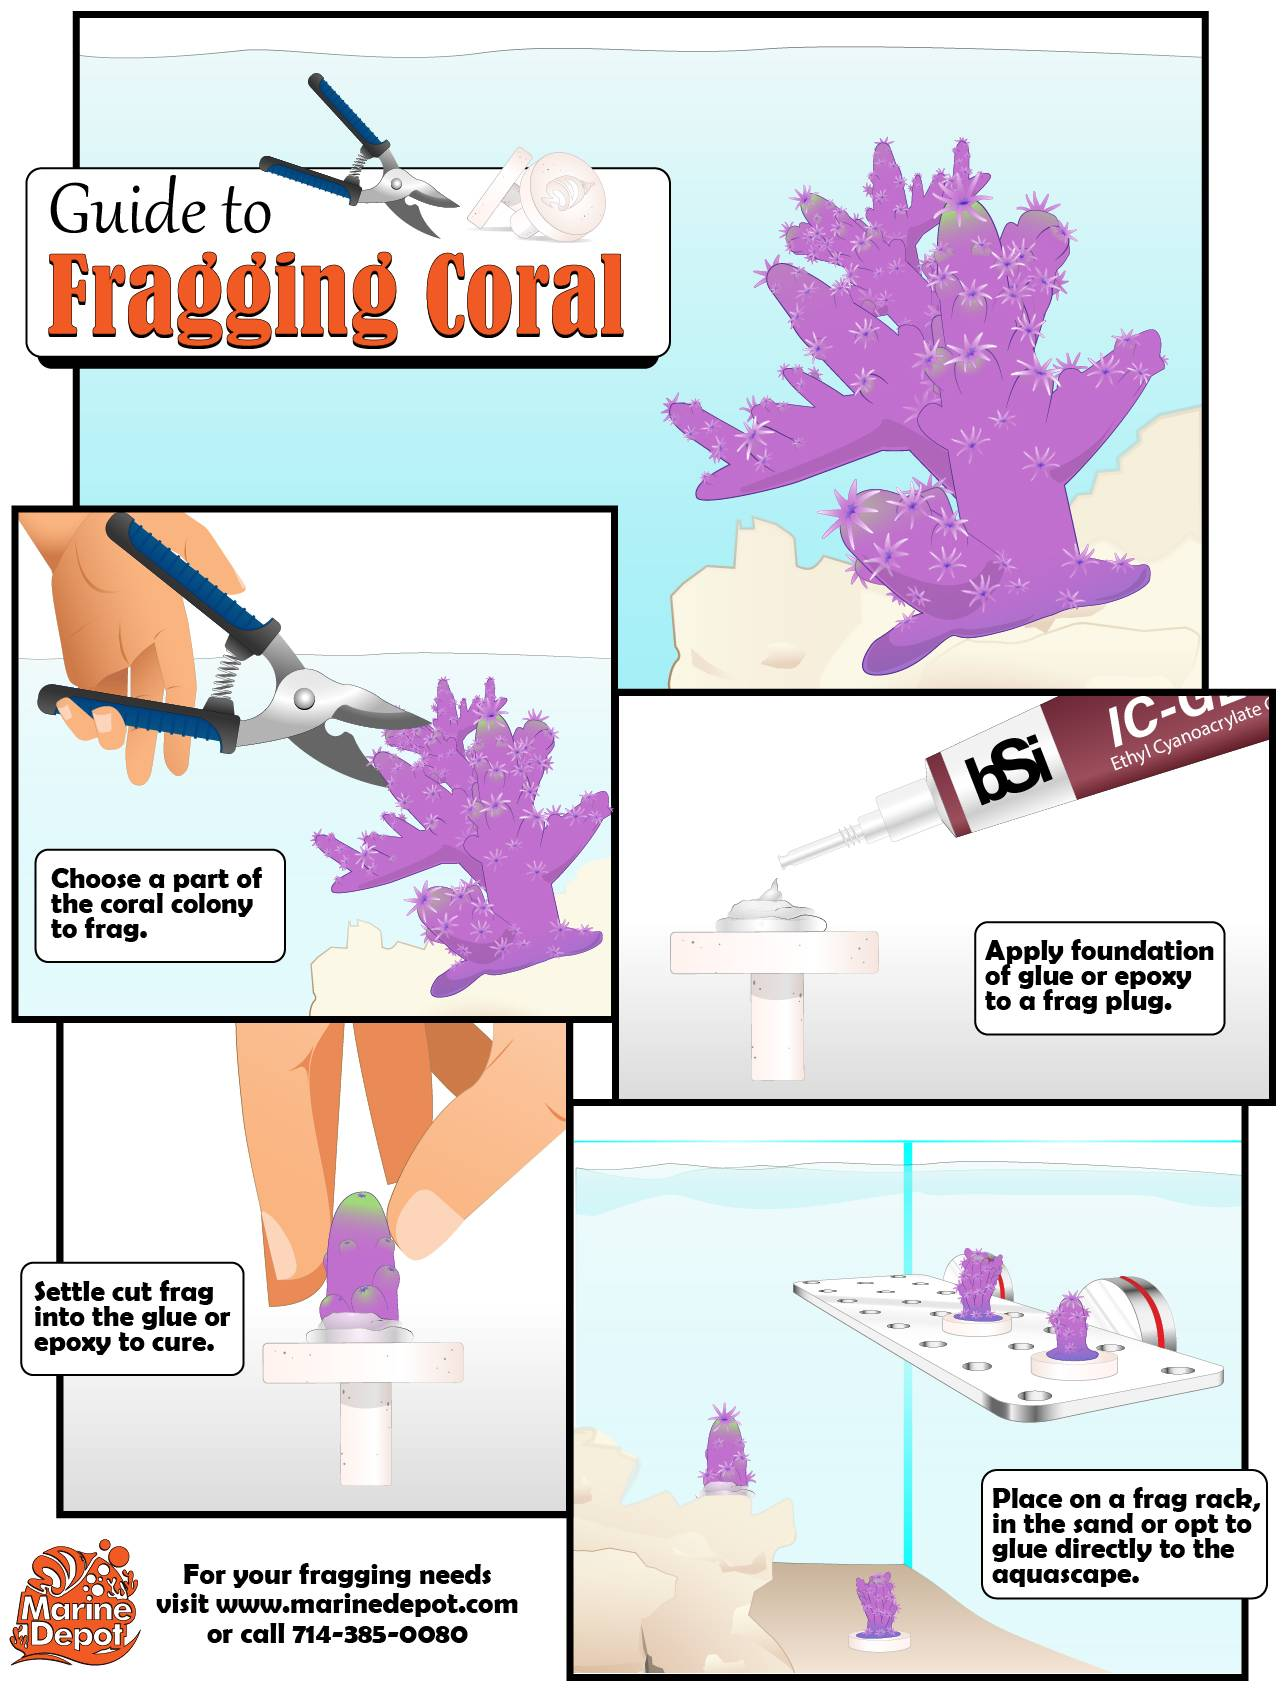 Simple guide to frag coral